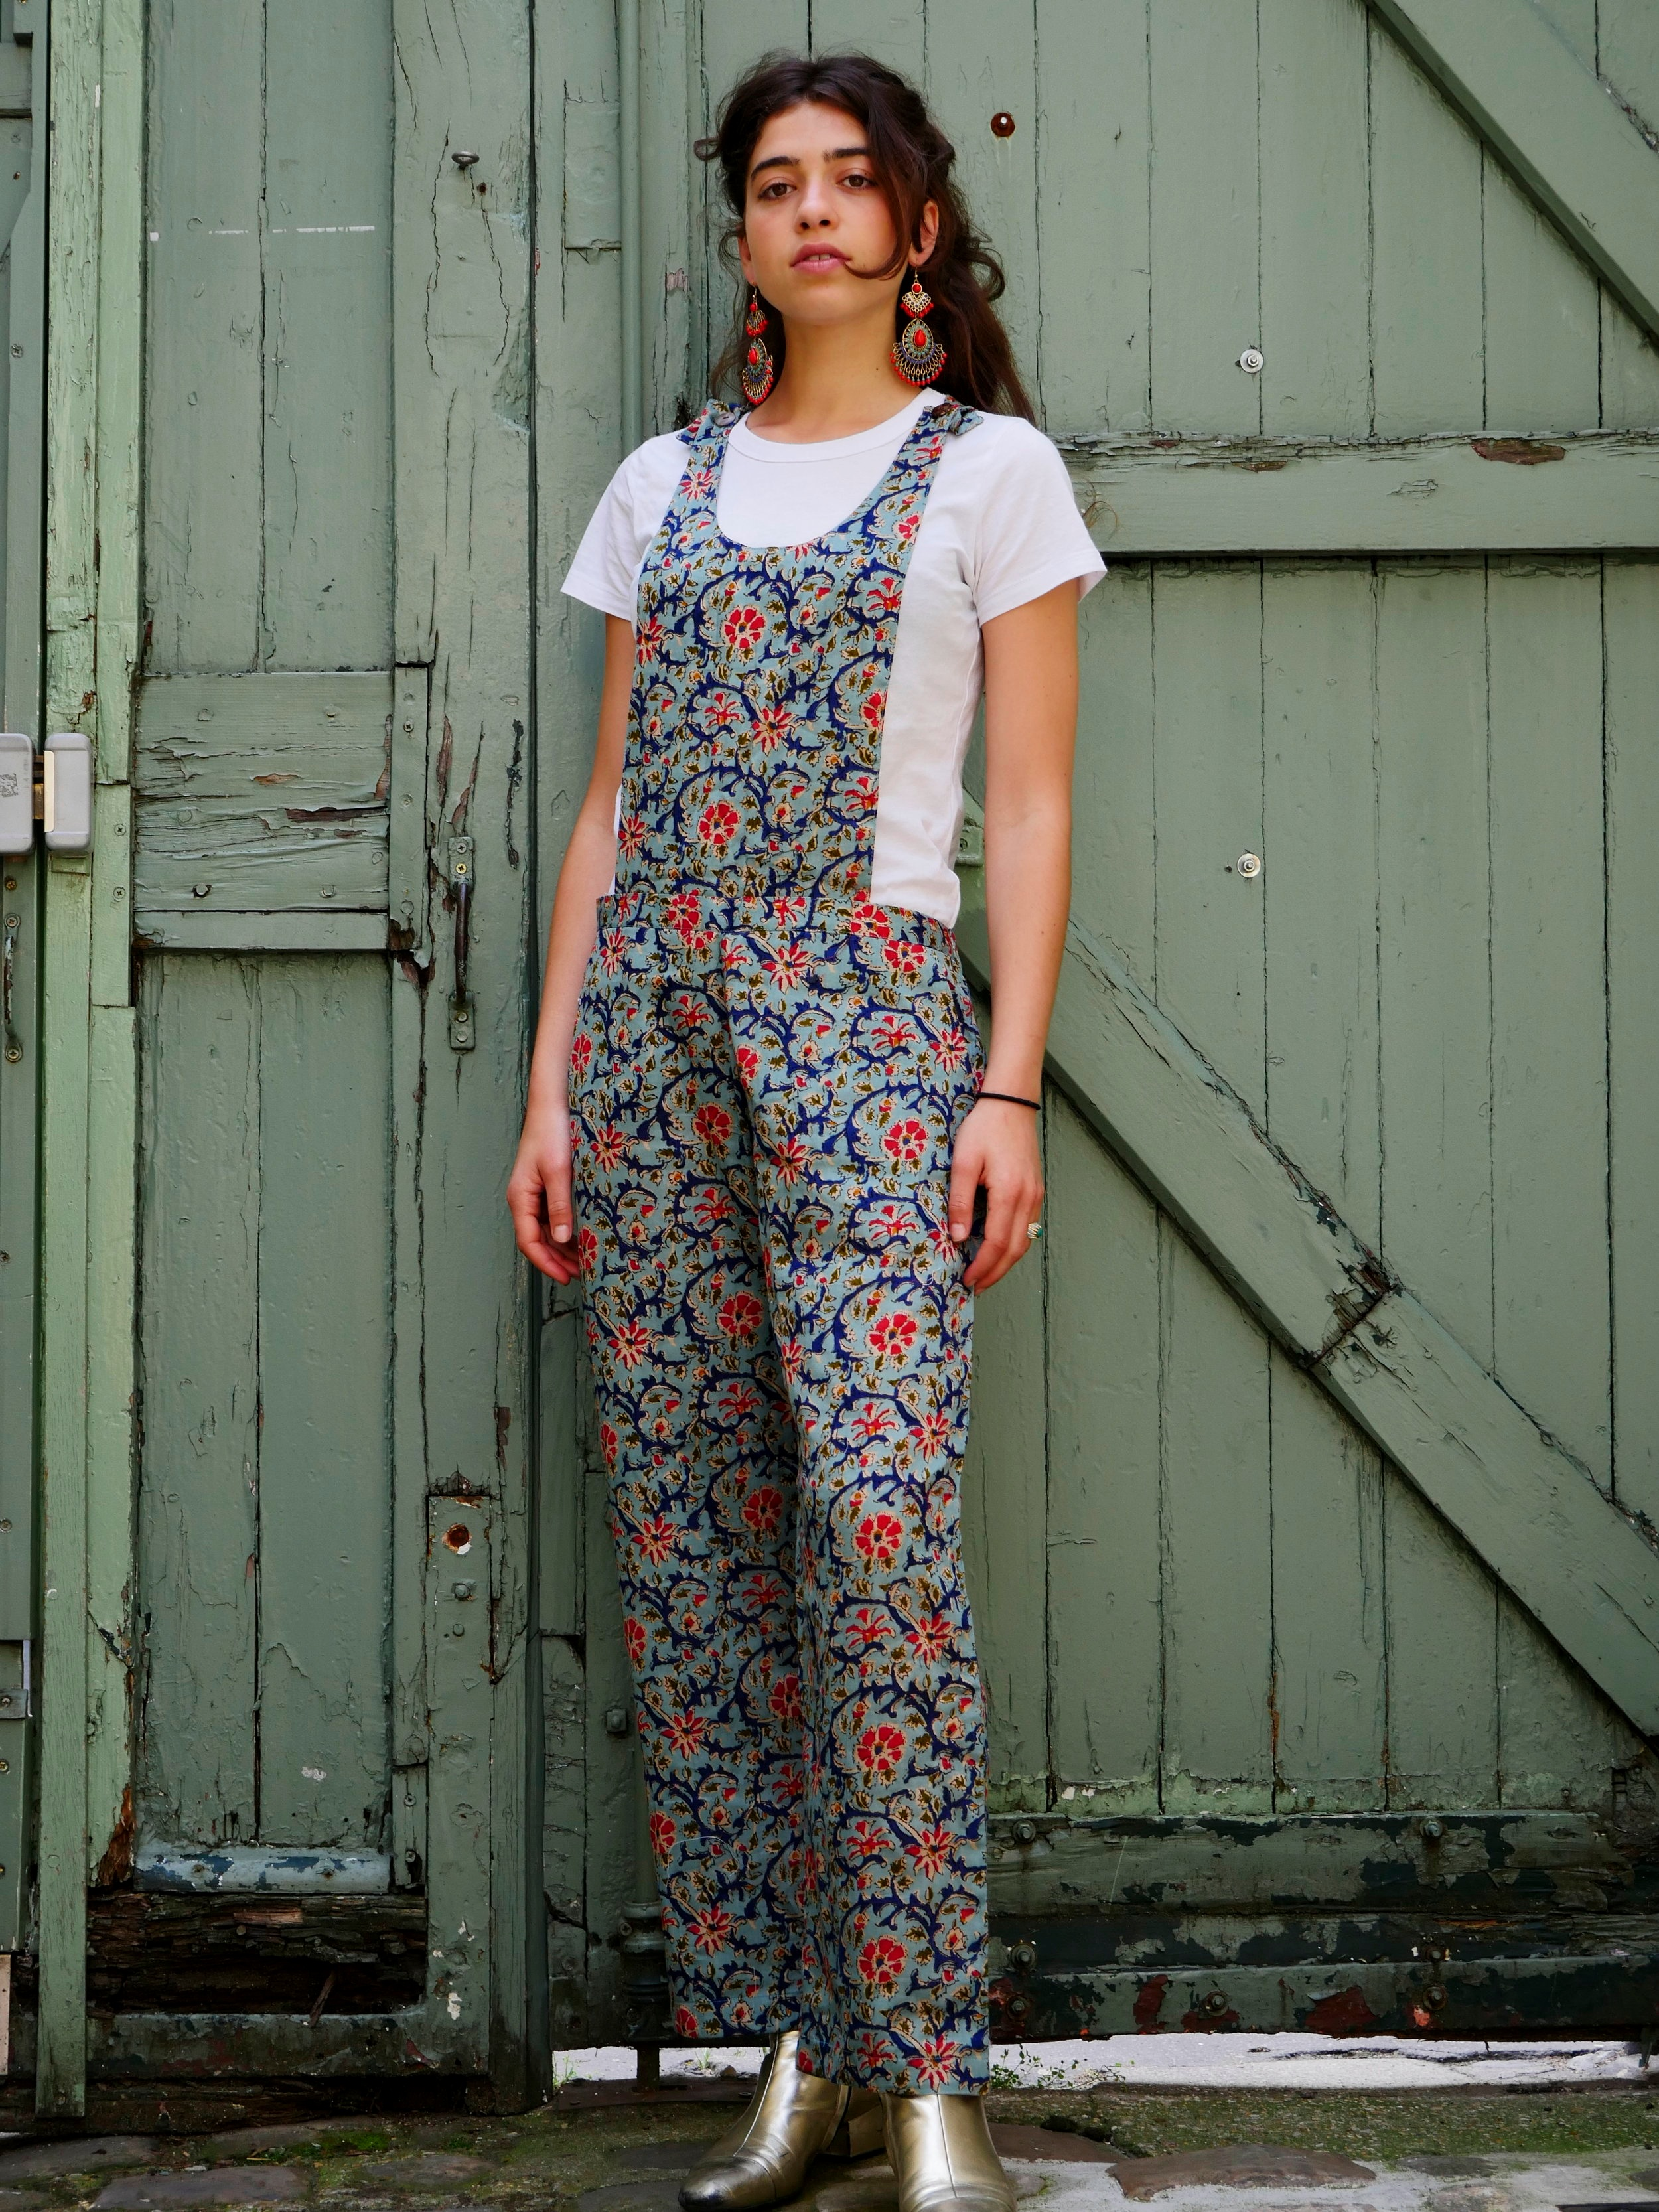 BECKY SKYBLUE OVERALL - Indian cotton, made in Bangladesh with love